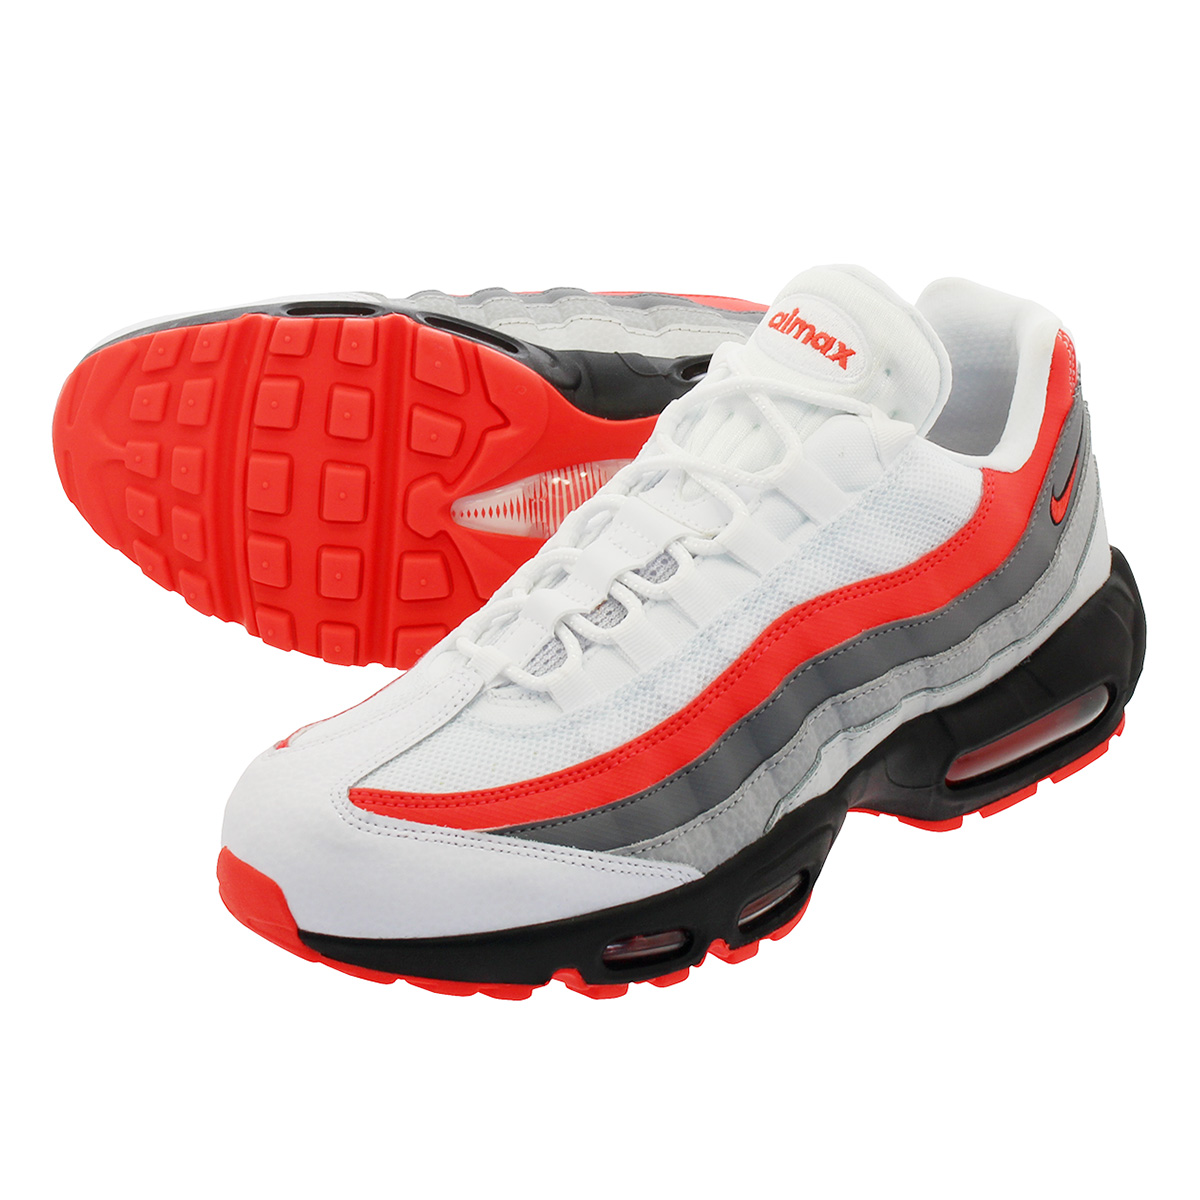 LOWTEX PLUS  NIKE AIR MAX 95 ESSENTIAL Kie Ney AMAX 95 essential WHITE BRIGHT  CRIMSON BLACK PURE PLATINUM 749 2e9ff04ba